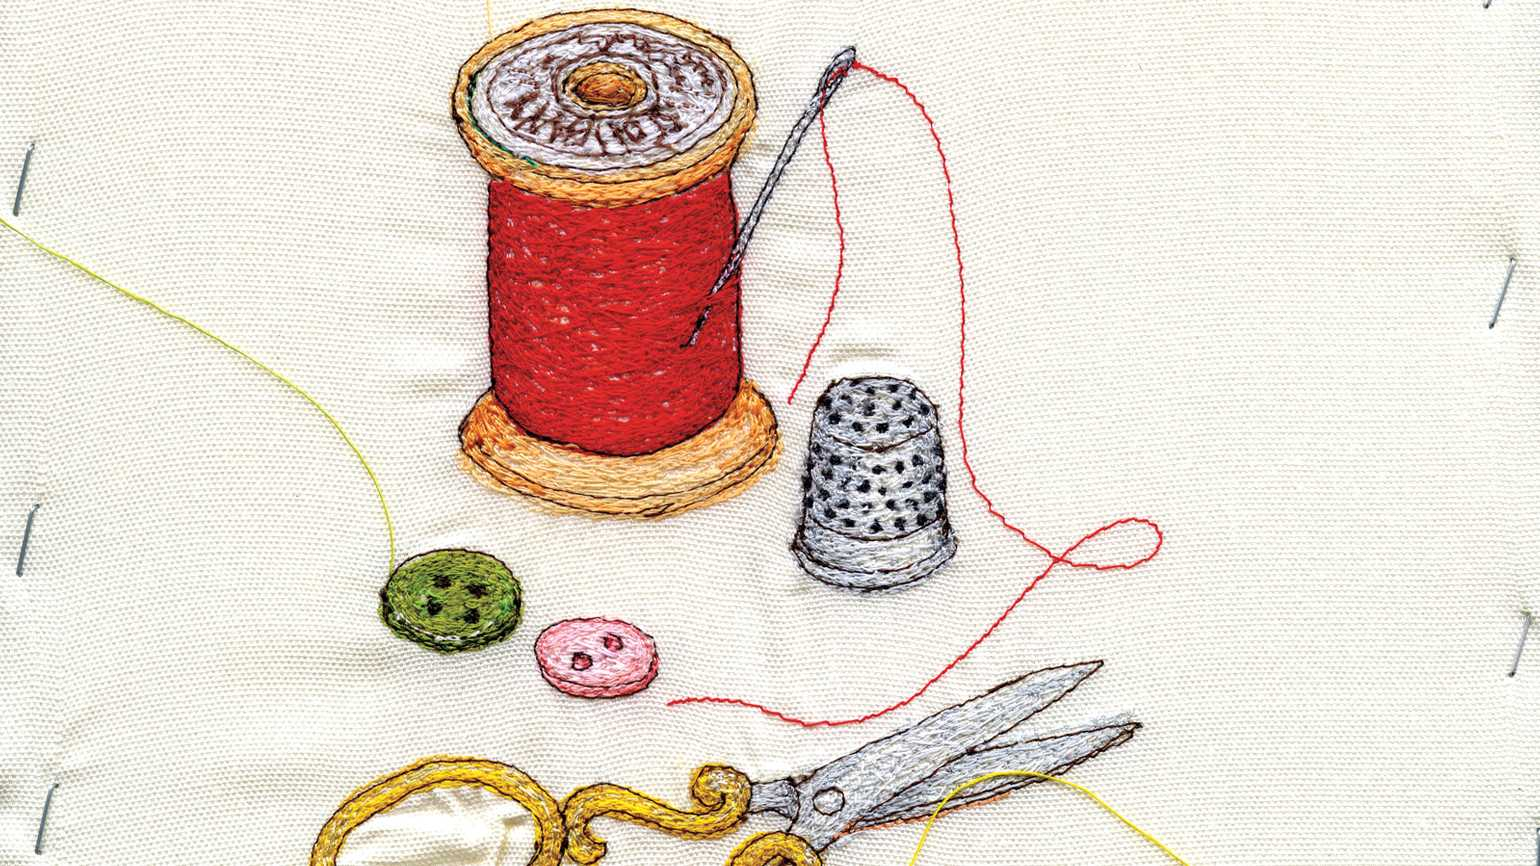 An artist's rendering of sewing materials; Illustration by Miyuki Sakai